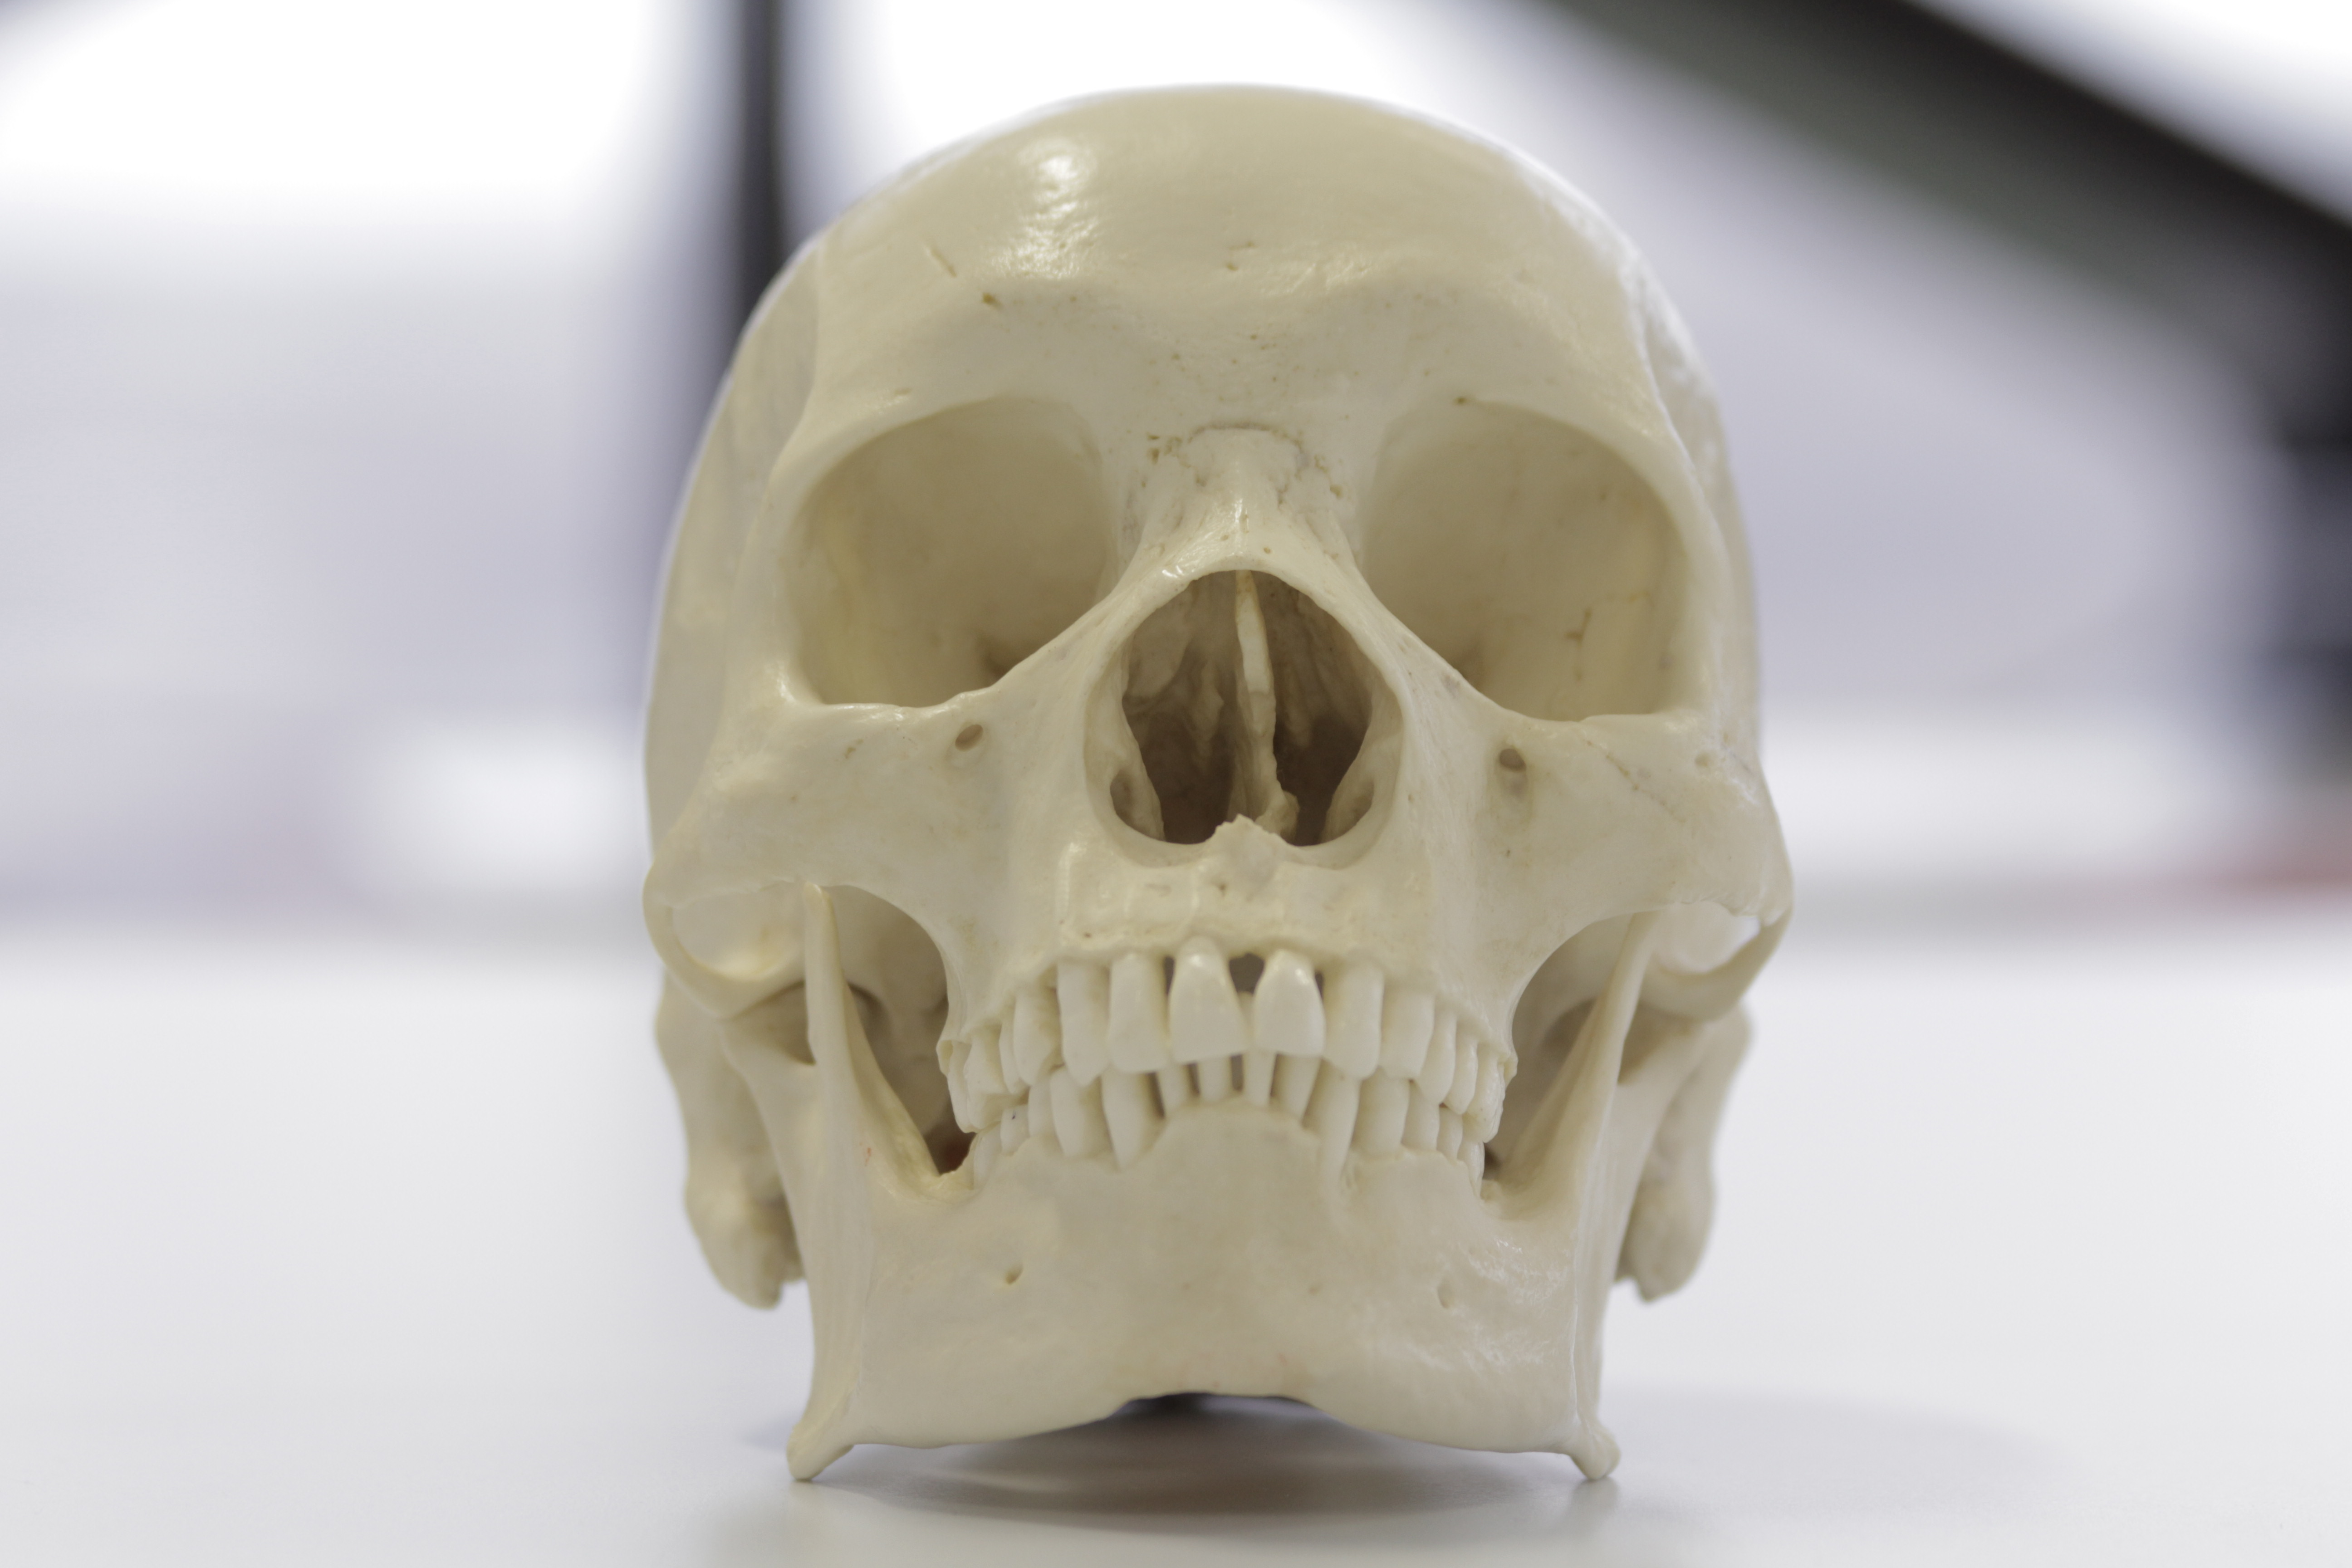 An African skull skull showing rectangular shaped orbits and wide nasal aperture